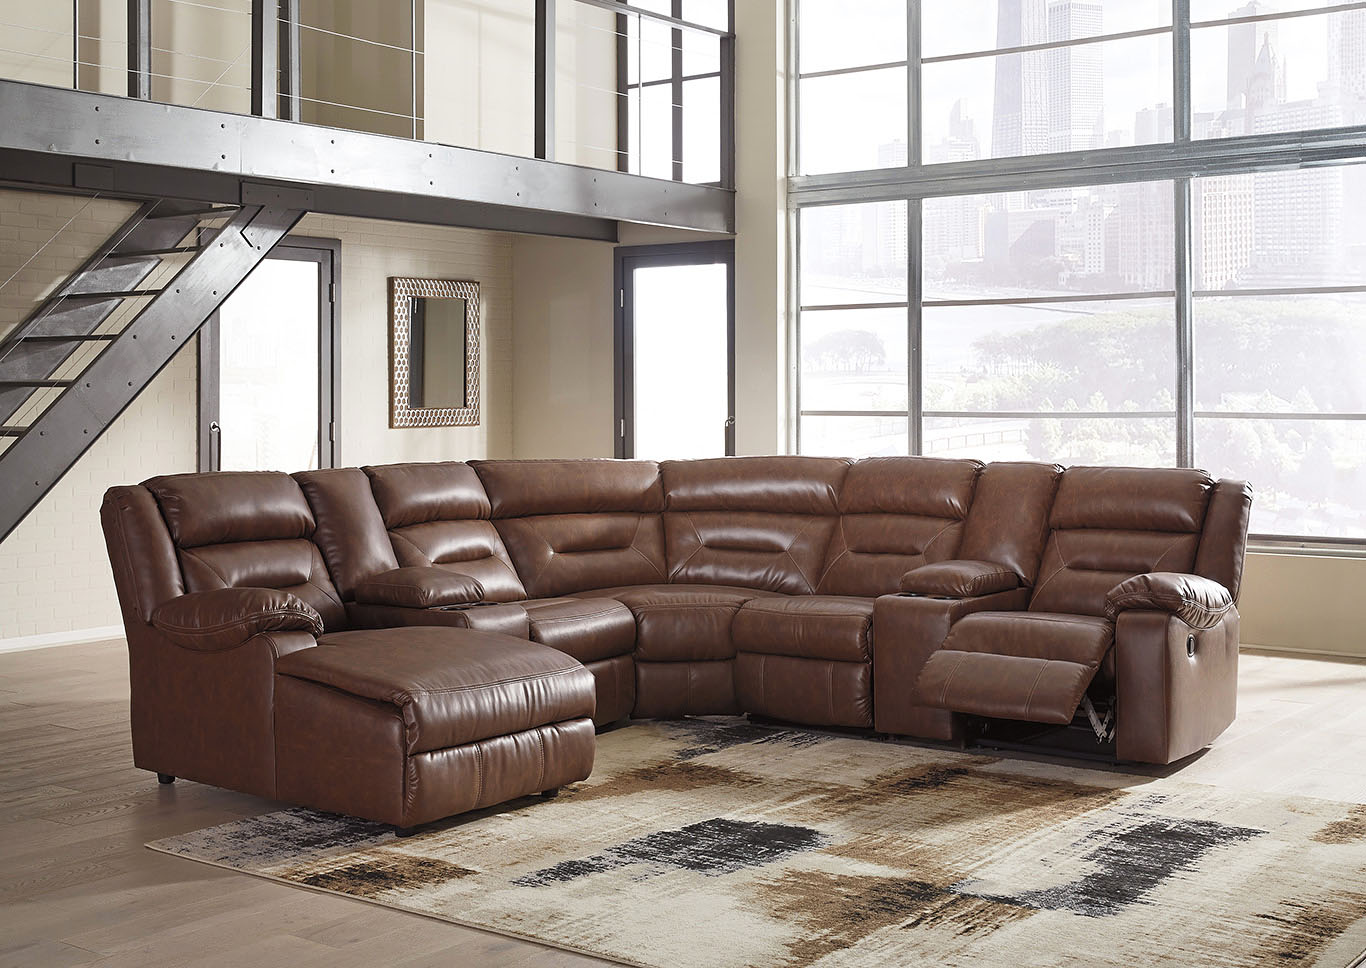 Coahoma Chestnut PU Leather 7 Piece LAF Chaise Sectional w/Consoles,Signature Design By Ashley